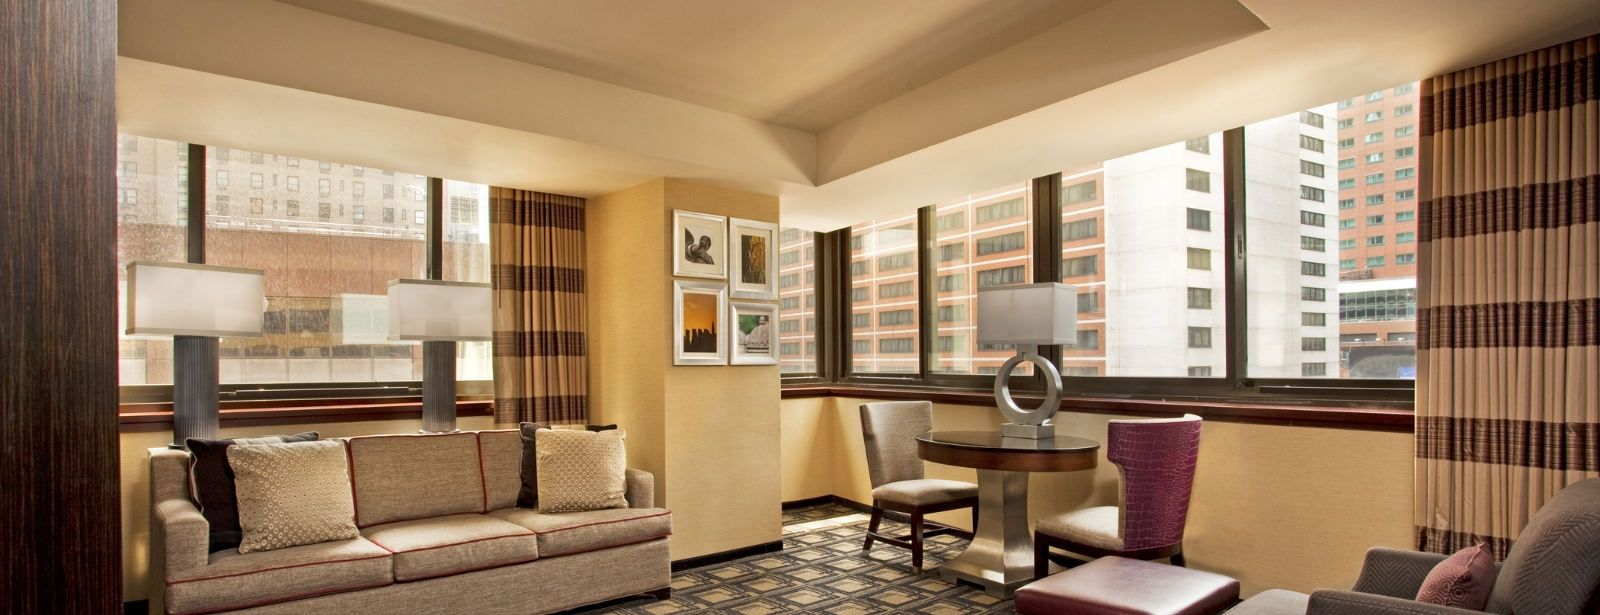 sheraton new york times square one bedroom parlor suite